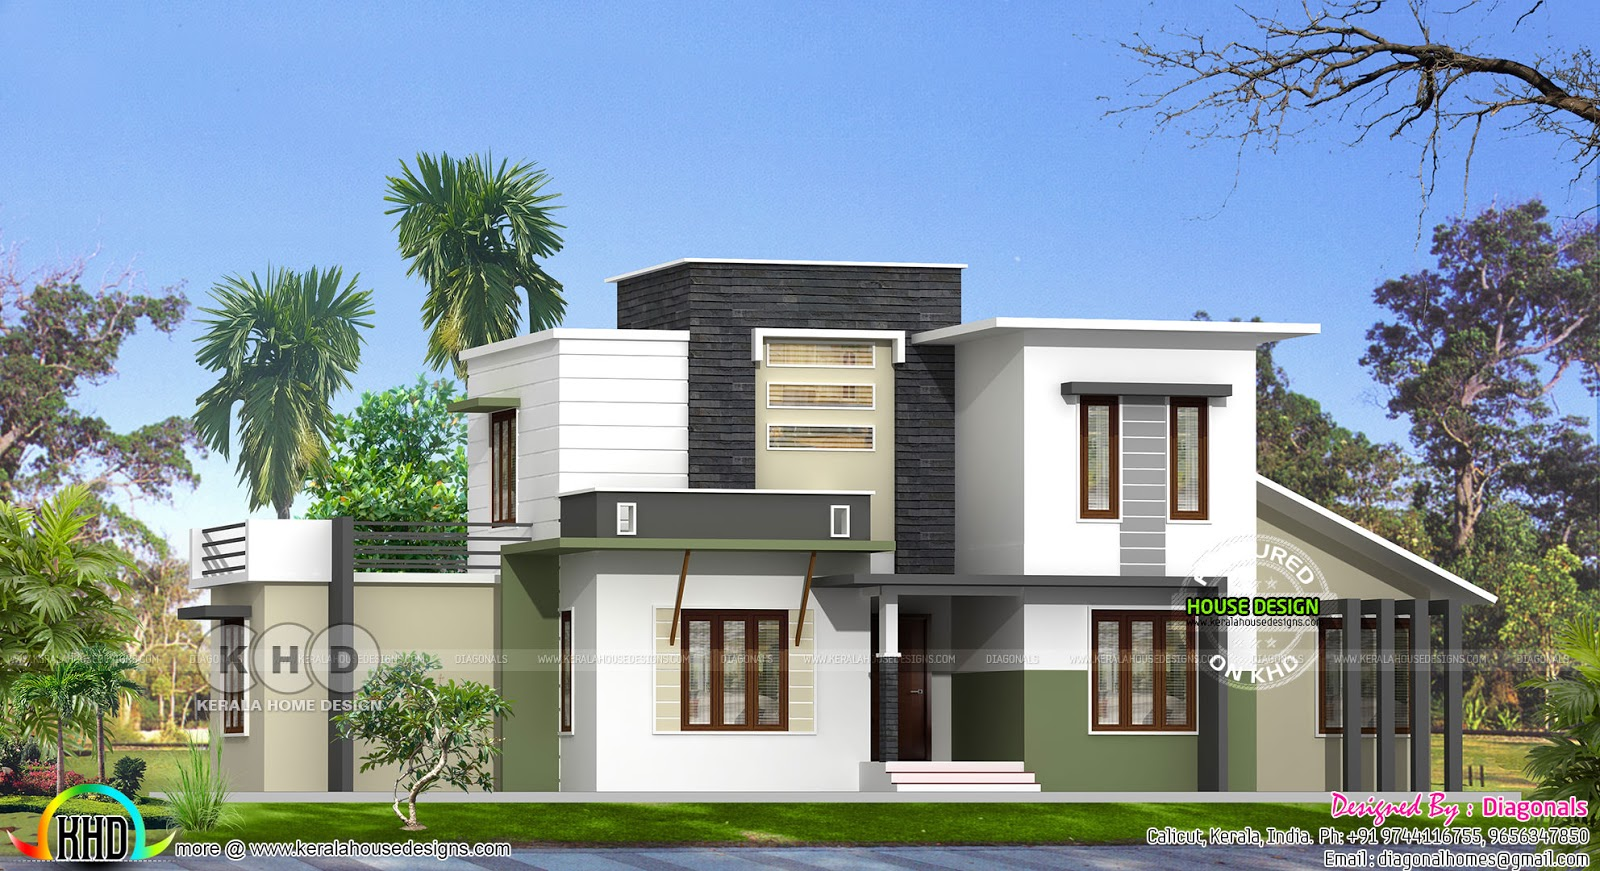 Modern flat roof 4 bedroom house architecture kerala for 3000 sq ft house plans kerala